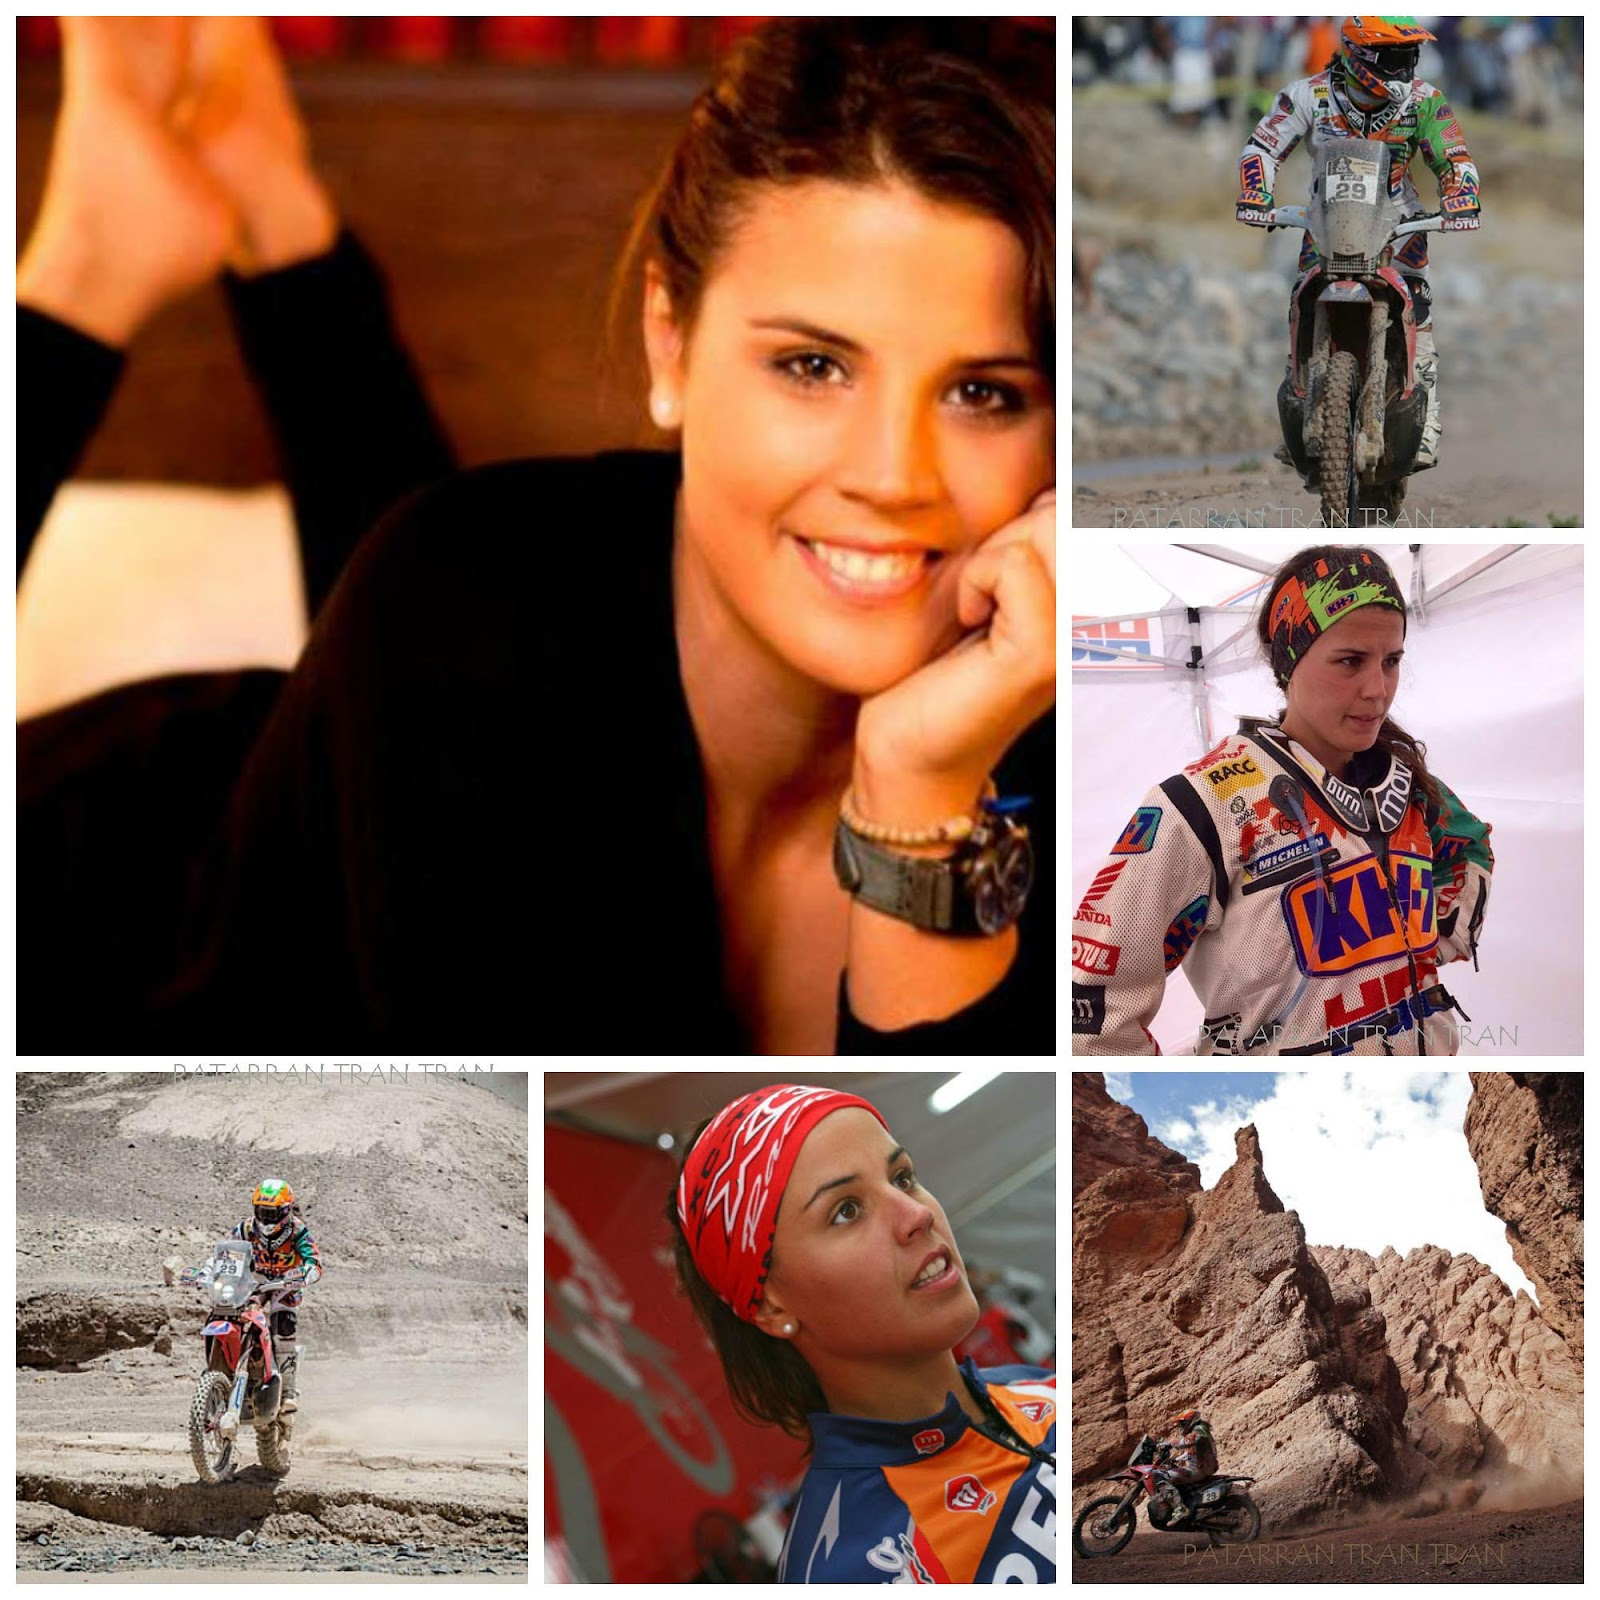 Laia Sanz. The Iron Lady. Novena en el Dakar 2015.